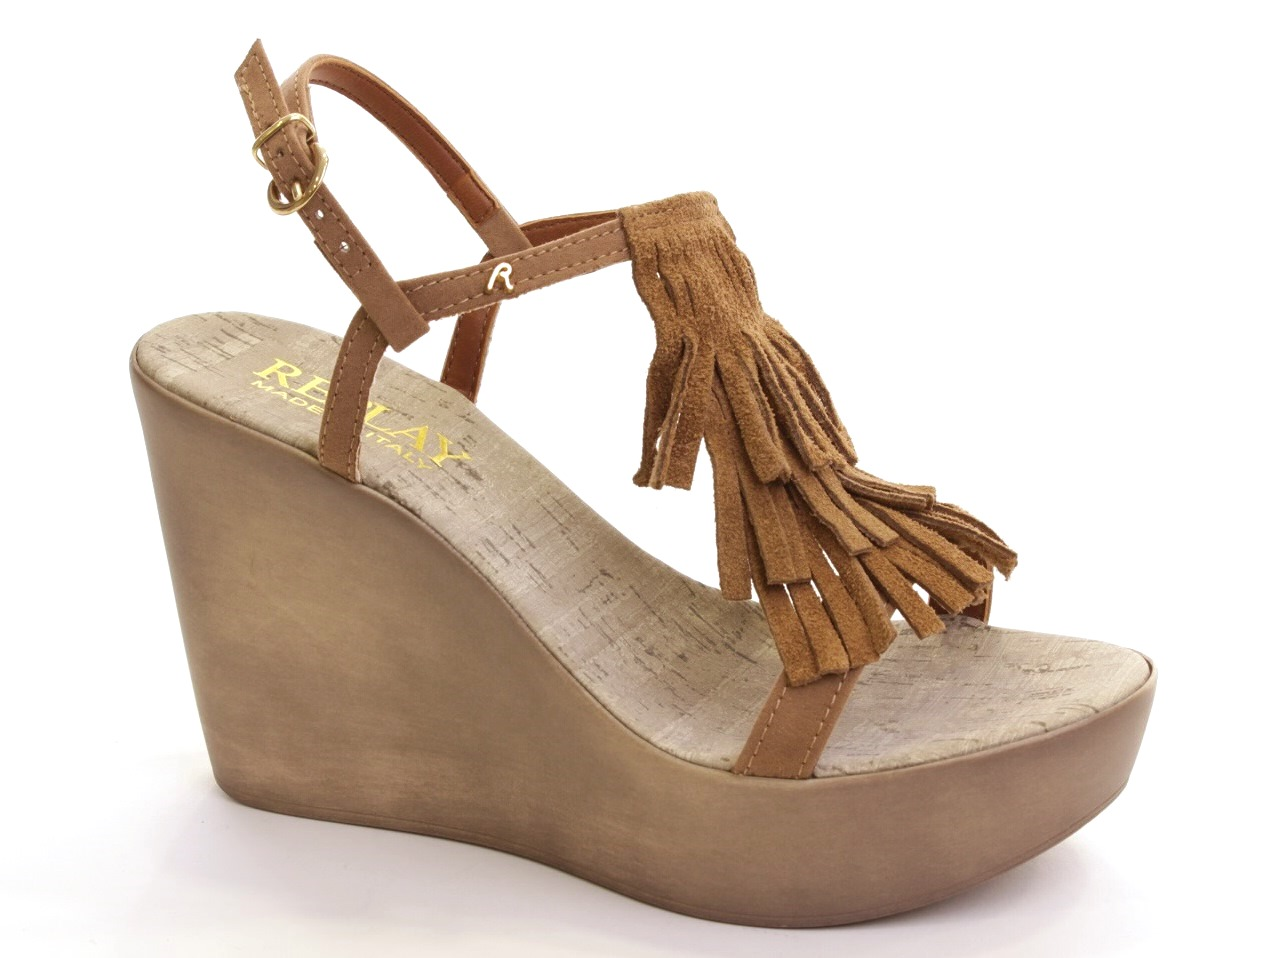 Wedge Sandals Replay - 621 MINS